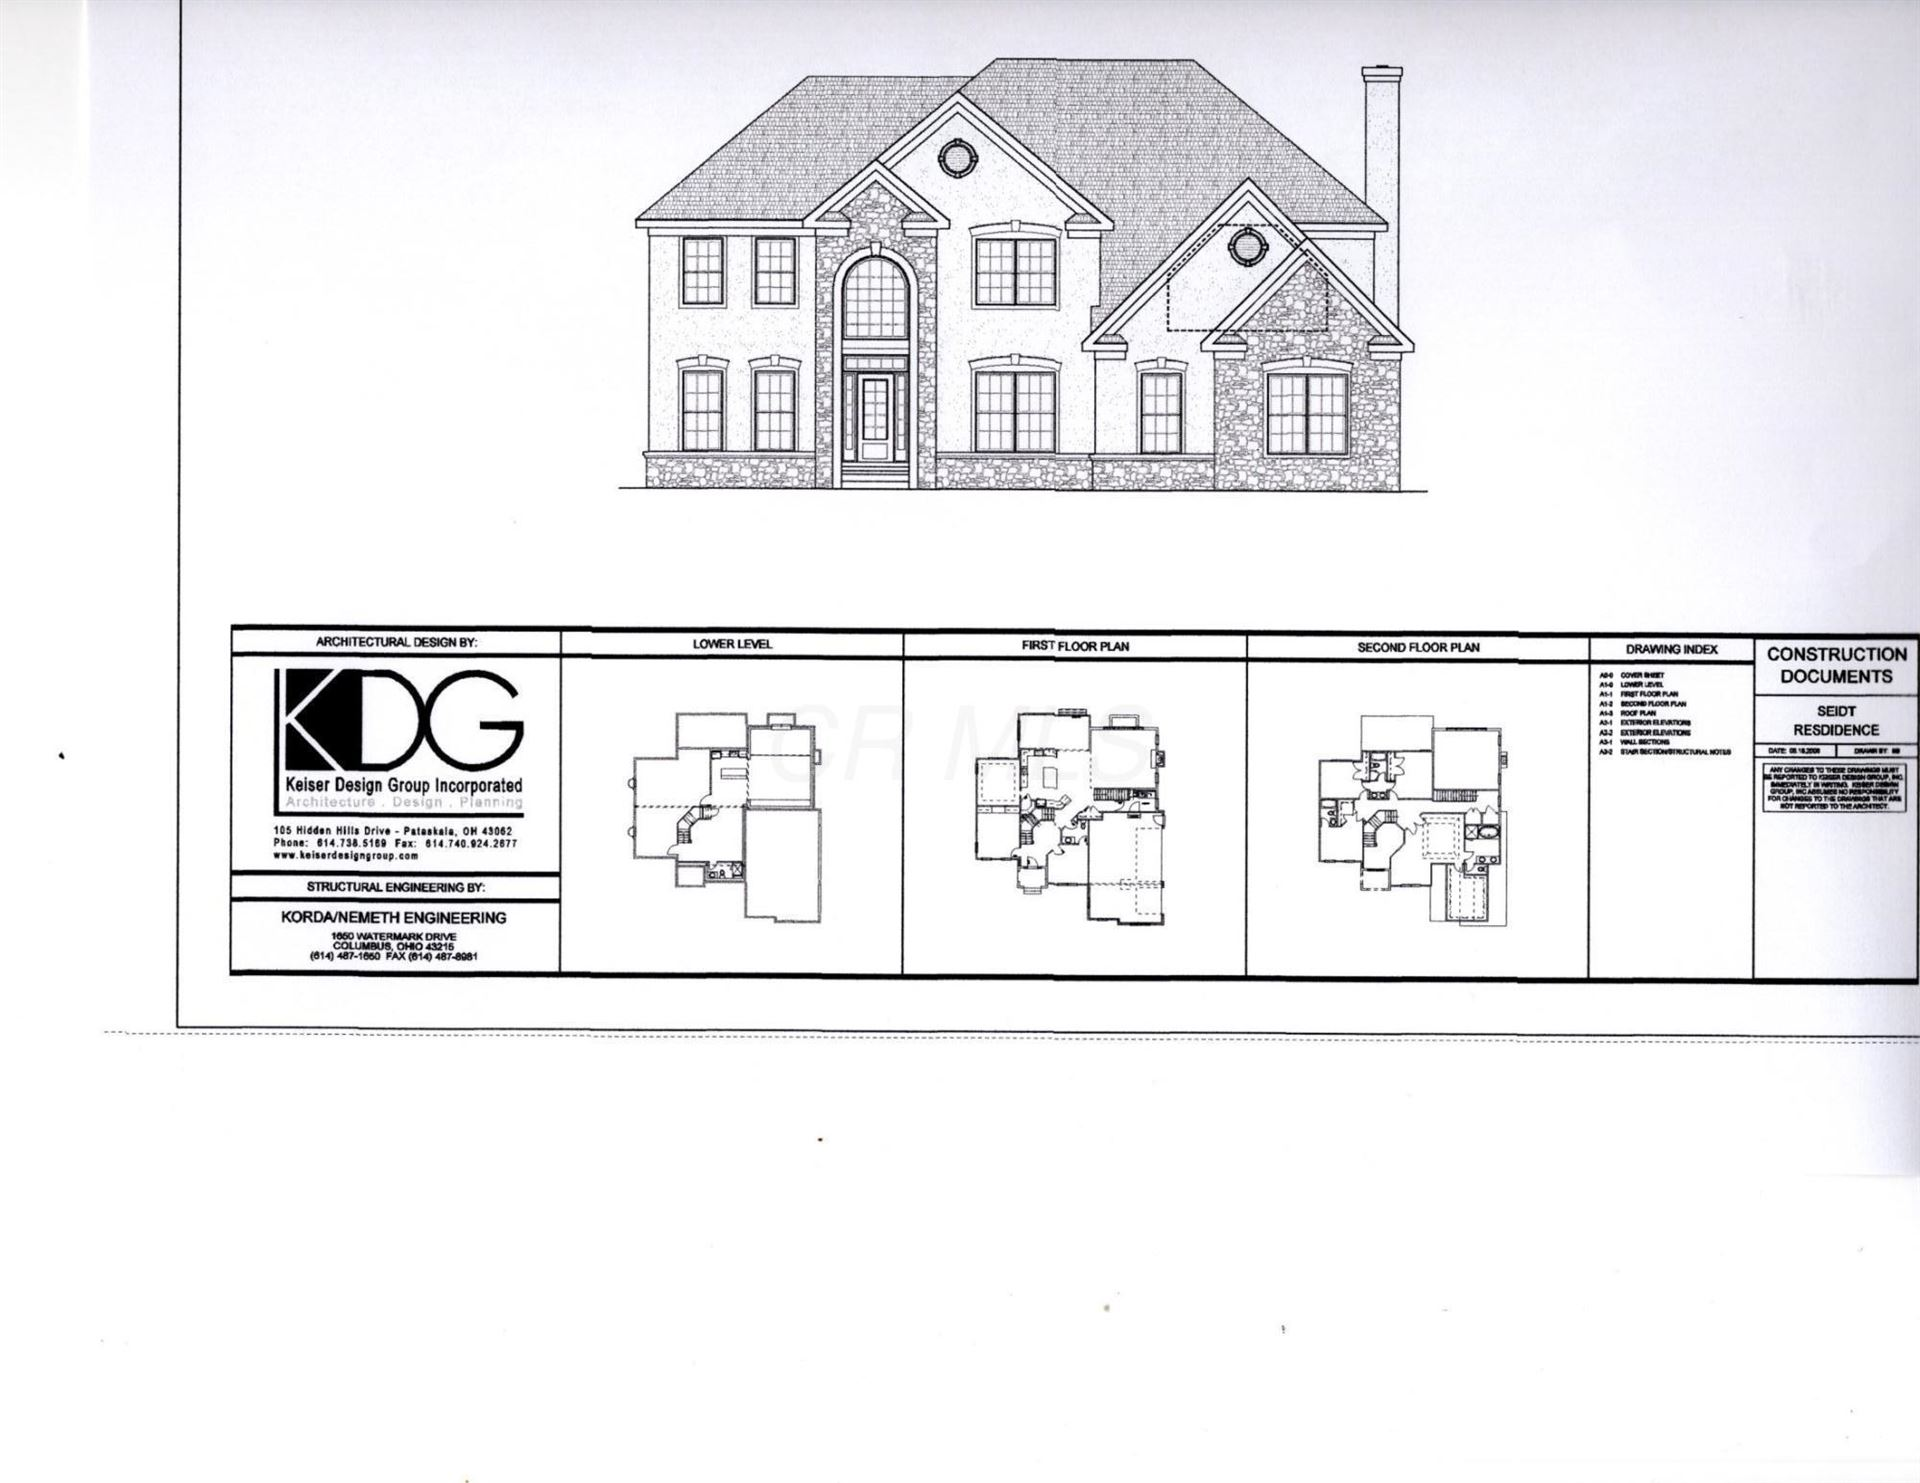 0 Bianca Dr. - Lot 176 Drive NW, Pickerington, OH 43147 - #: 220042630